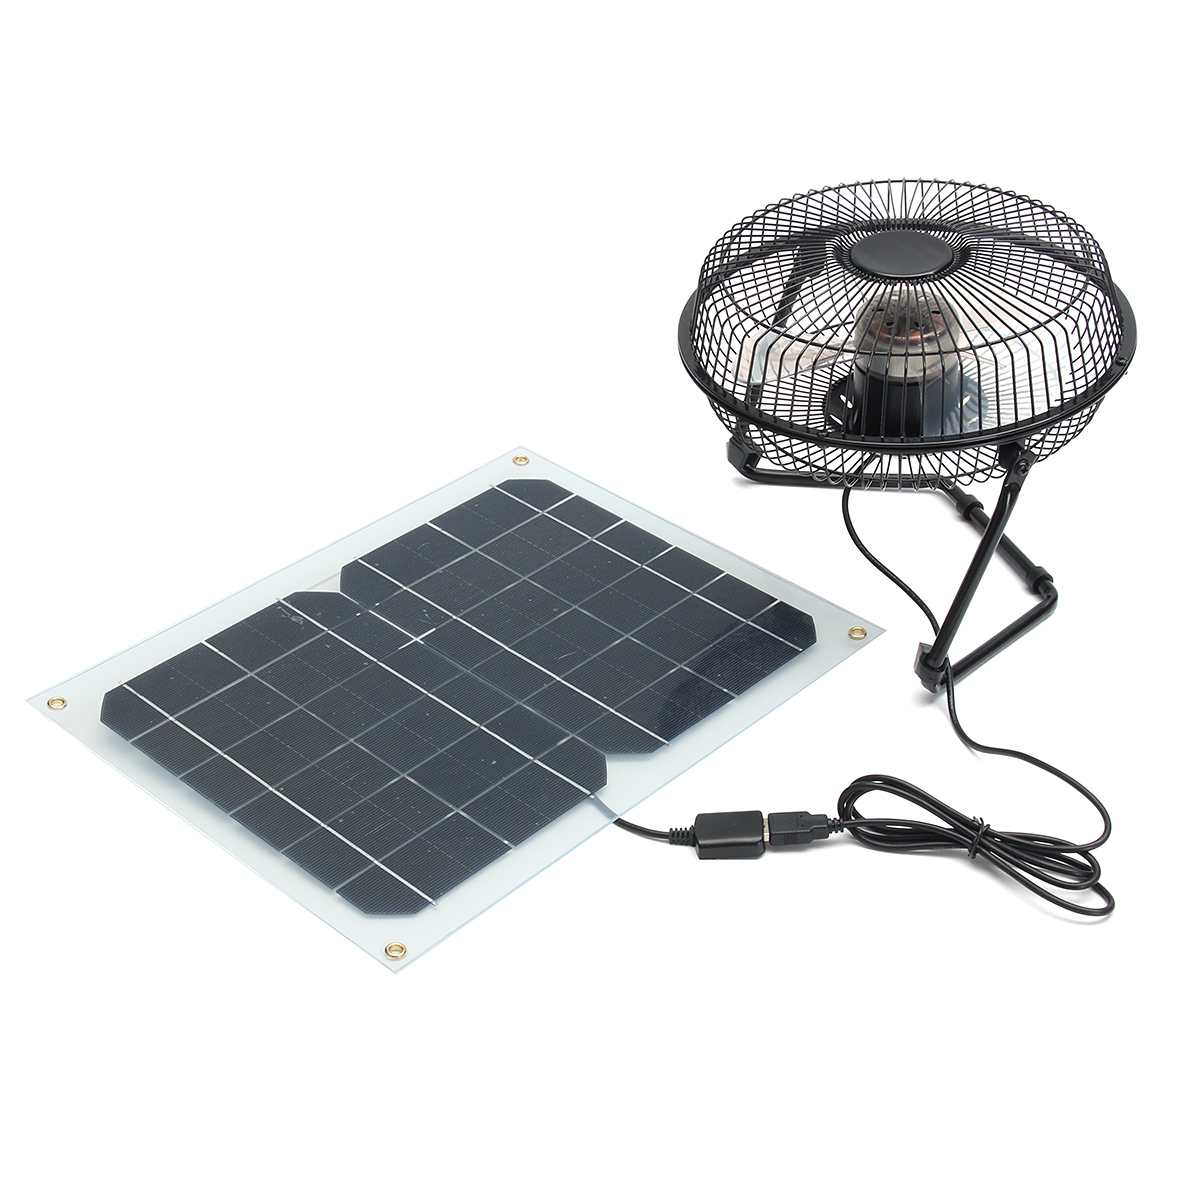 7 Portable Solar Laptop Chargers Worth Considering additionally Tp4056 1 also Pump Packages together with Solar Battery Charger For D Size Battery How To besides 331631779333. on solar battery trickle charger